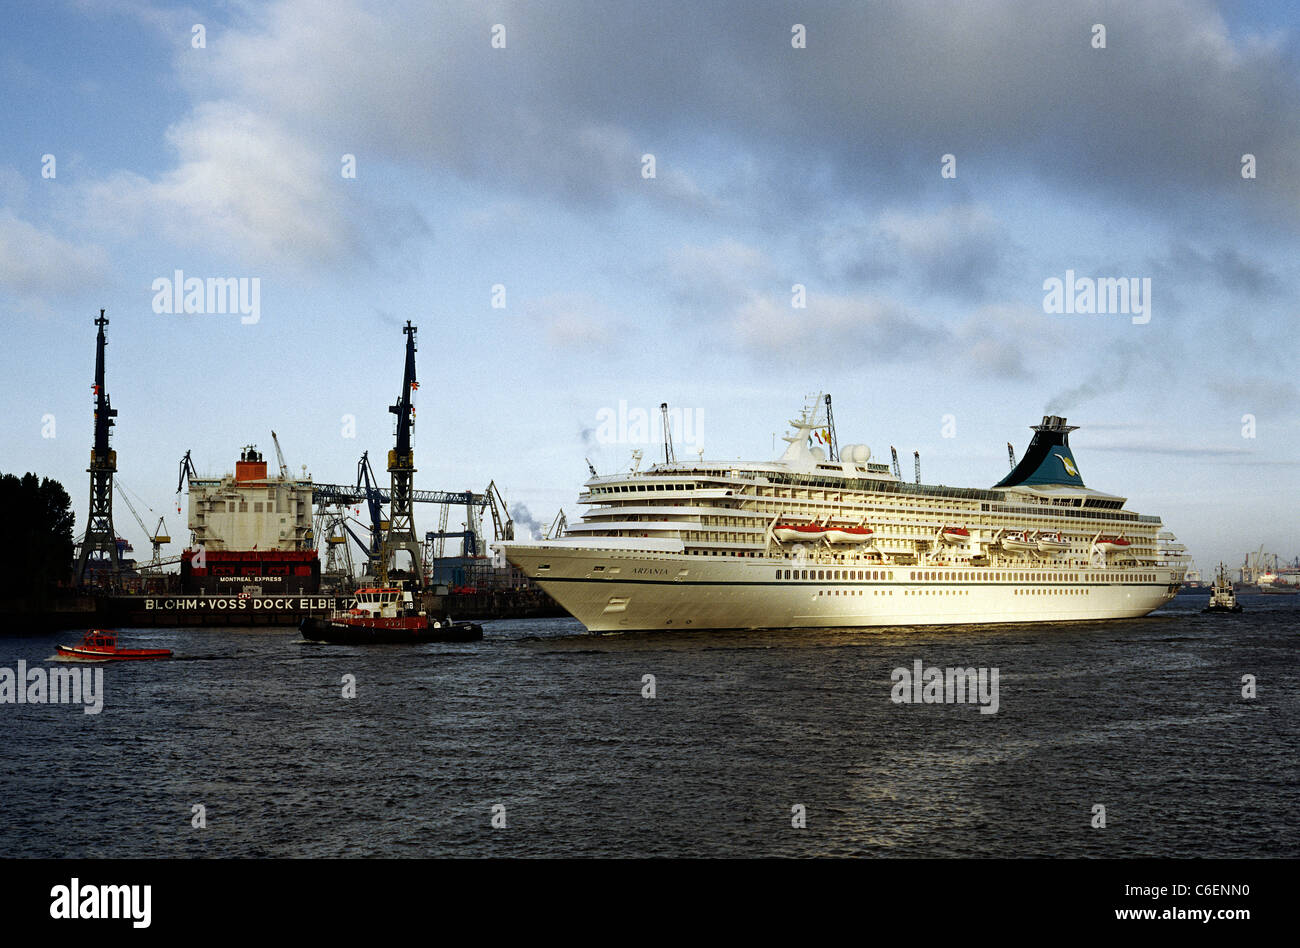 Ms Artania Cruise Ship Ms Artania Passes Blohm Voss Shipyard In The Port Of